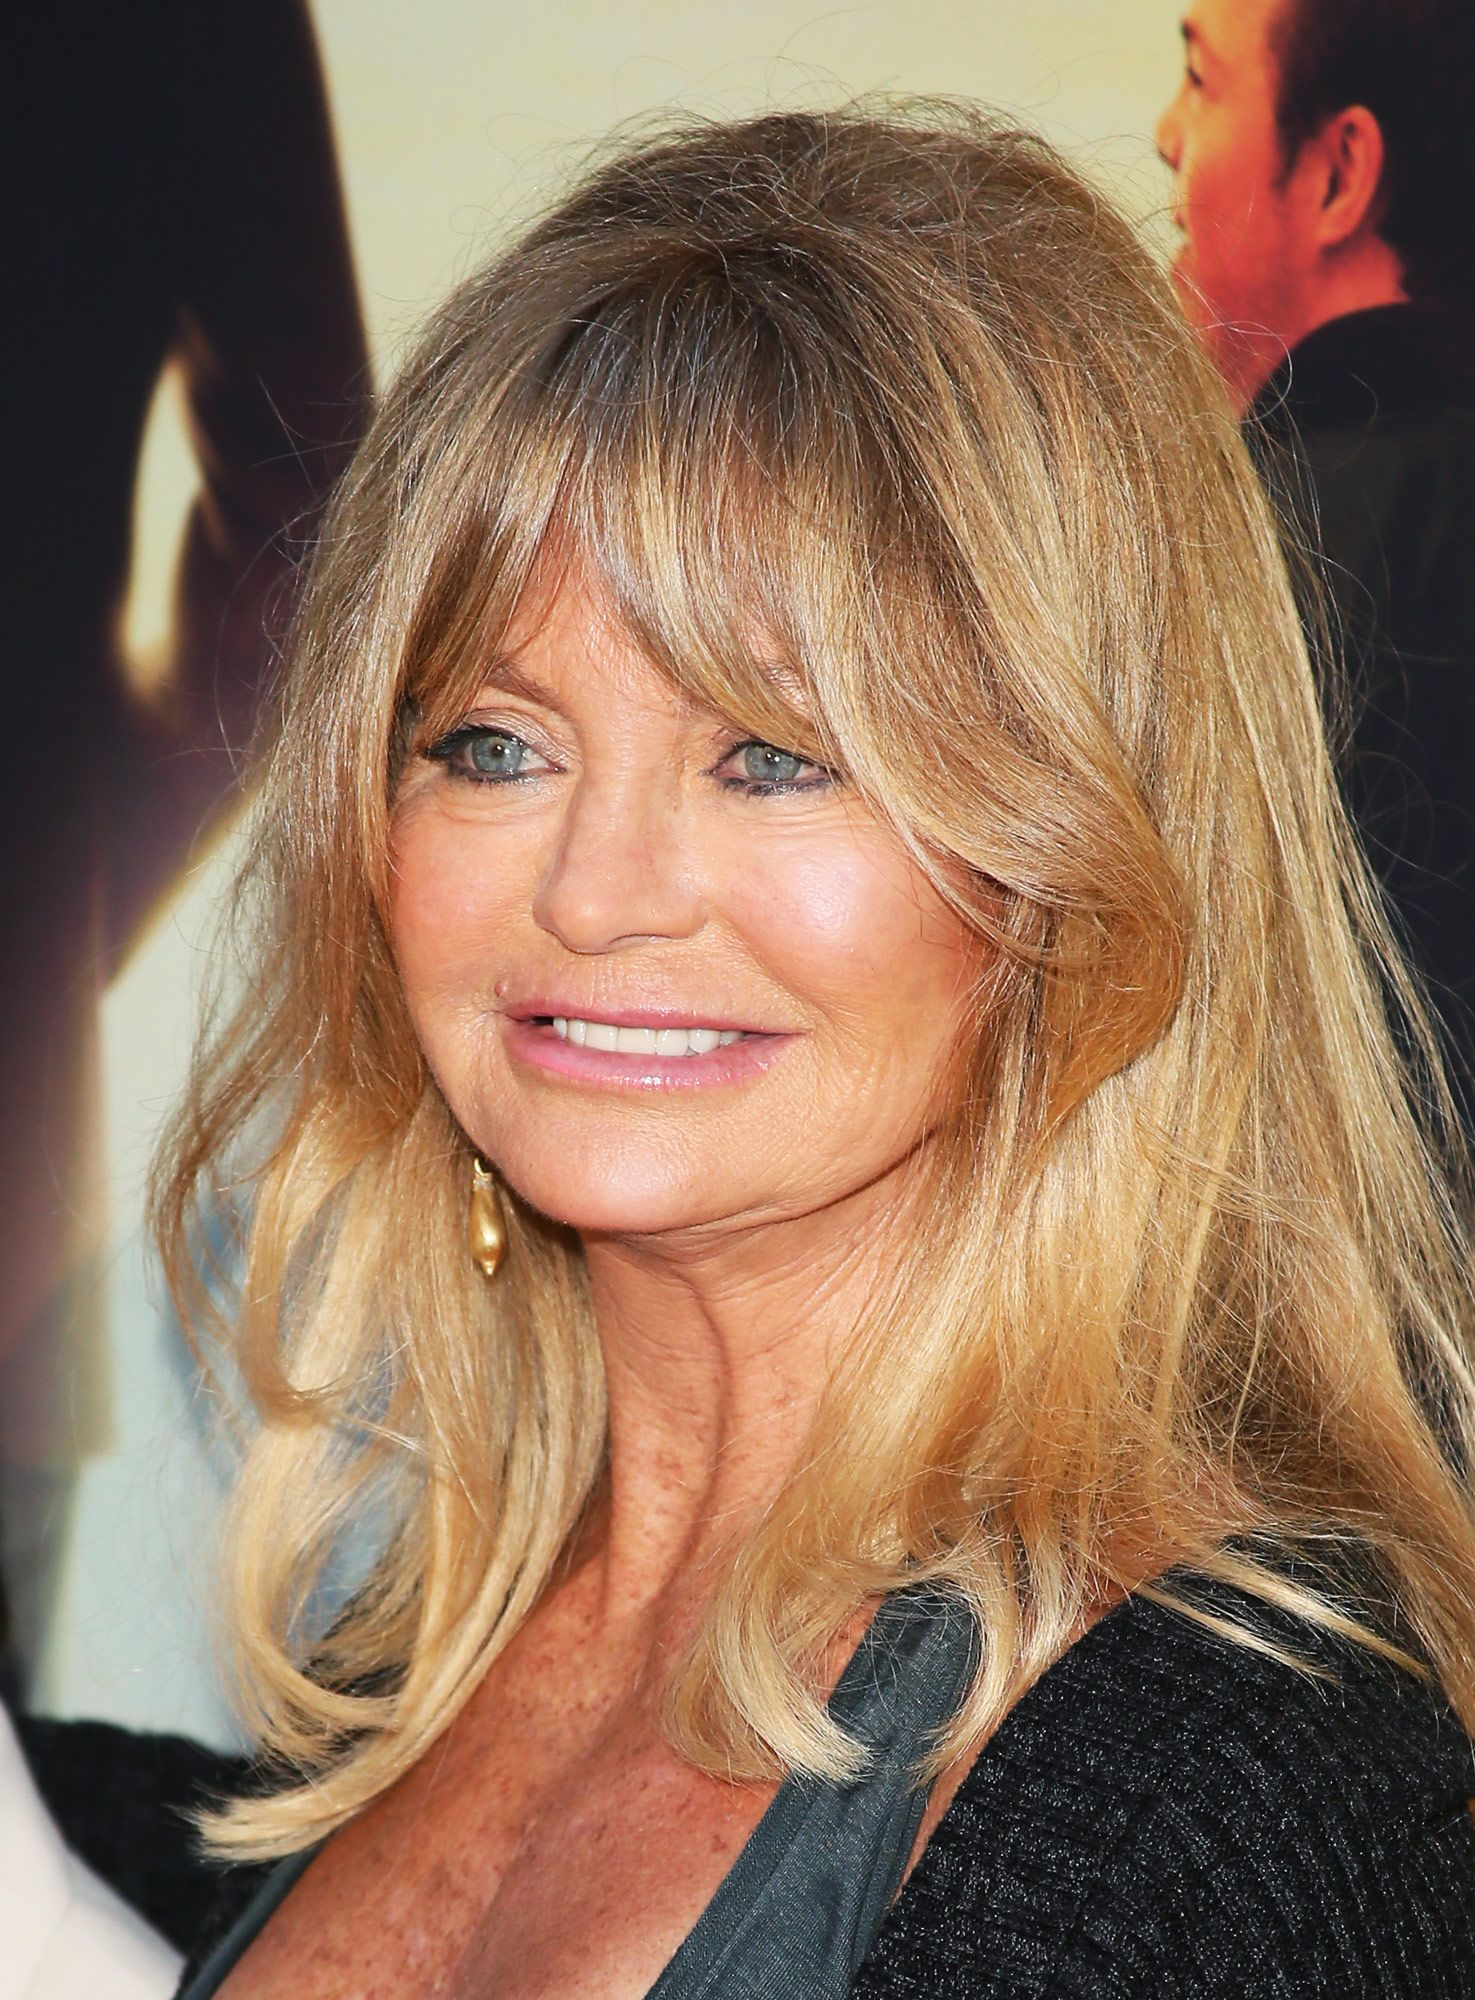 Amateur Allure Goldie goldie hawn shares her secrets to living a balanced life